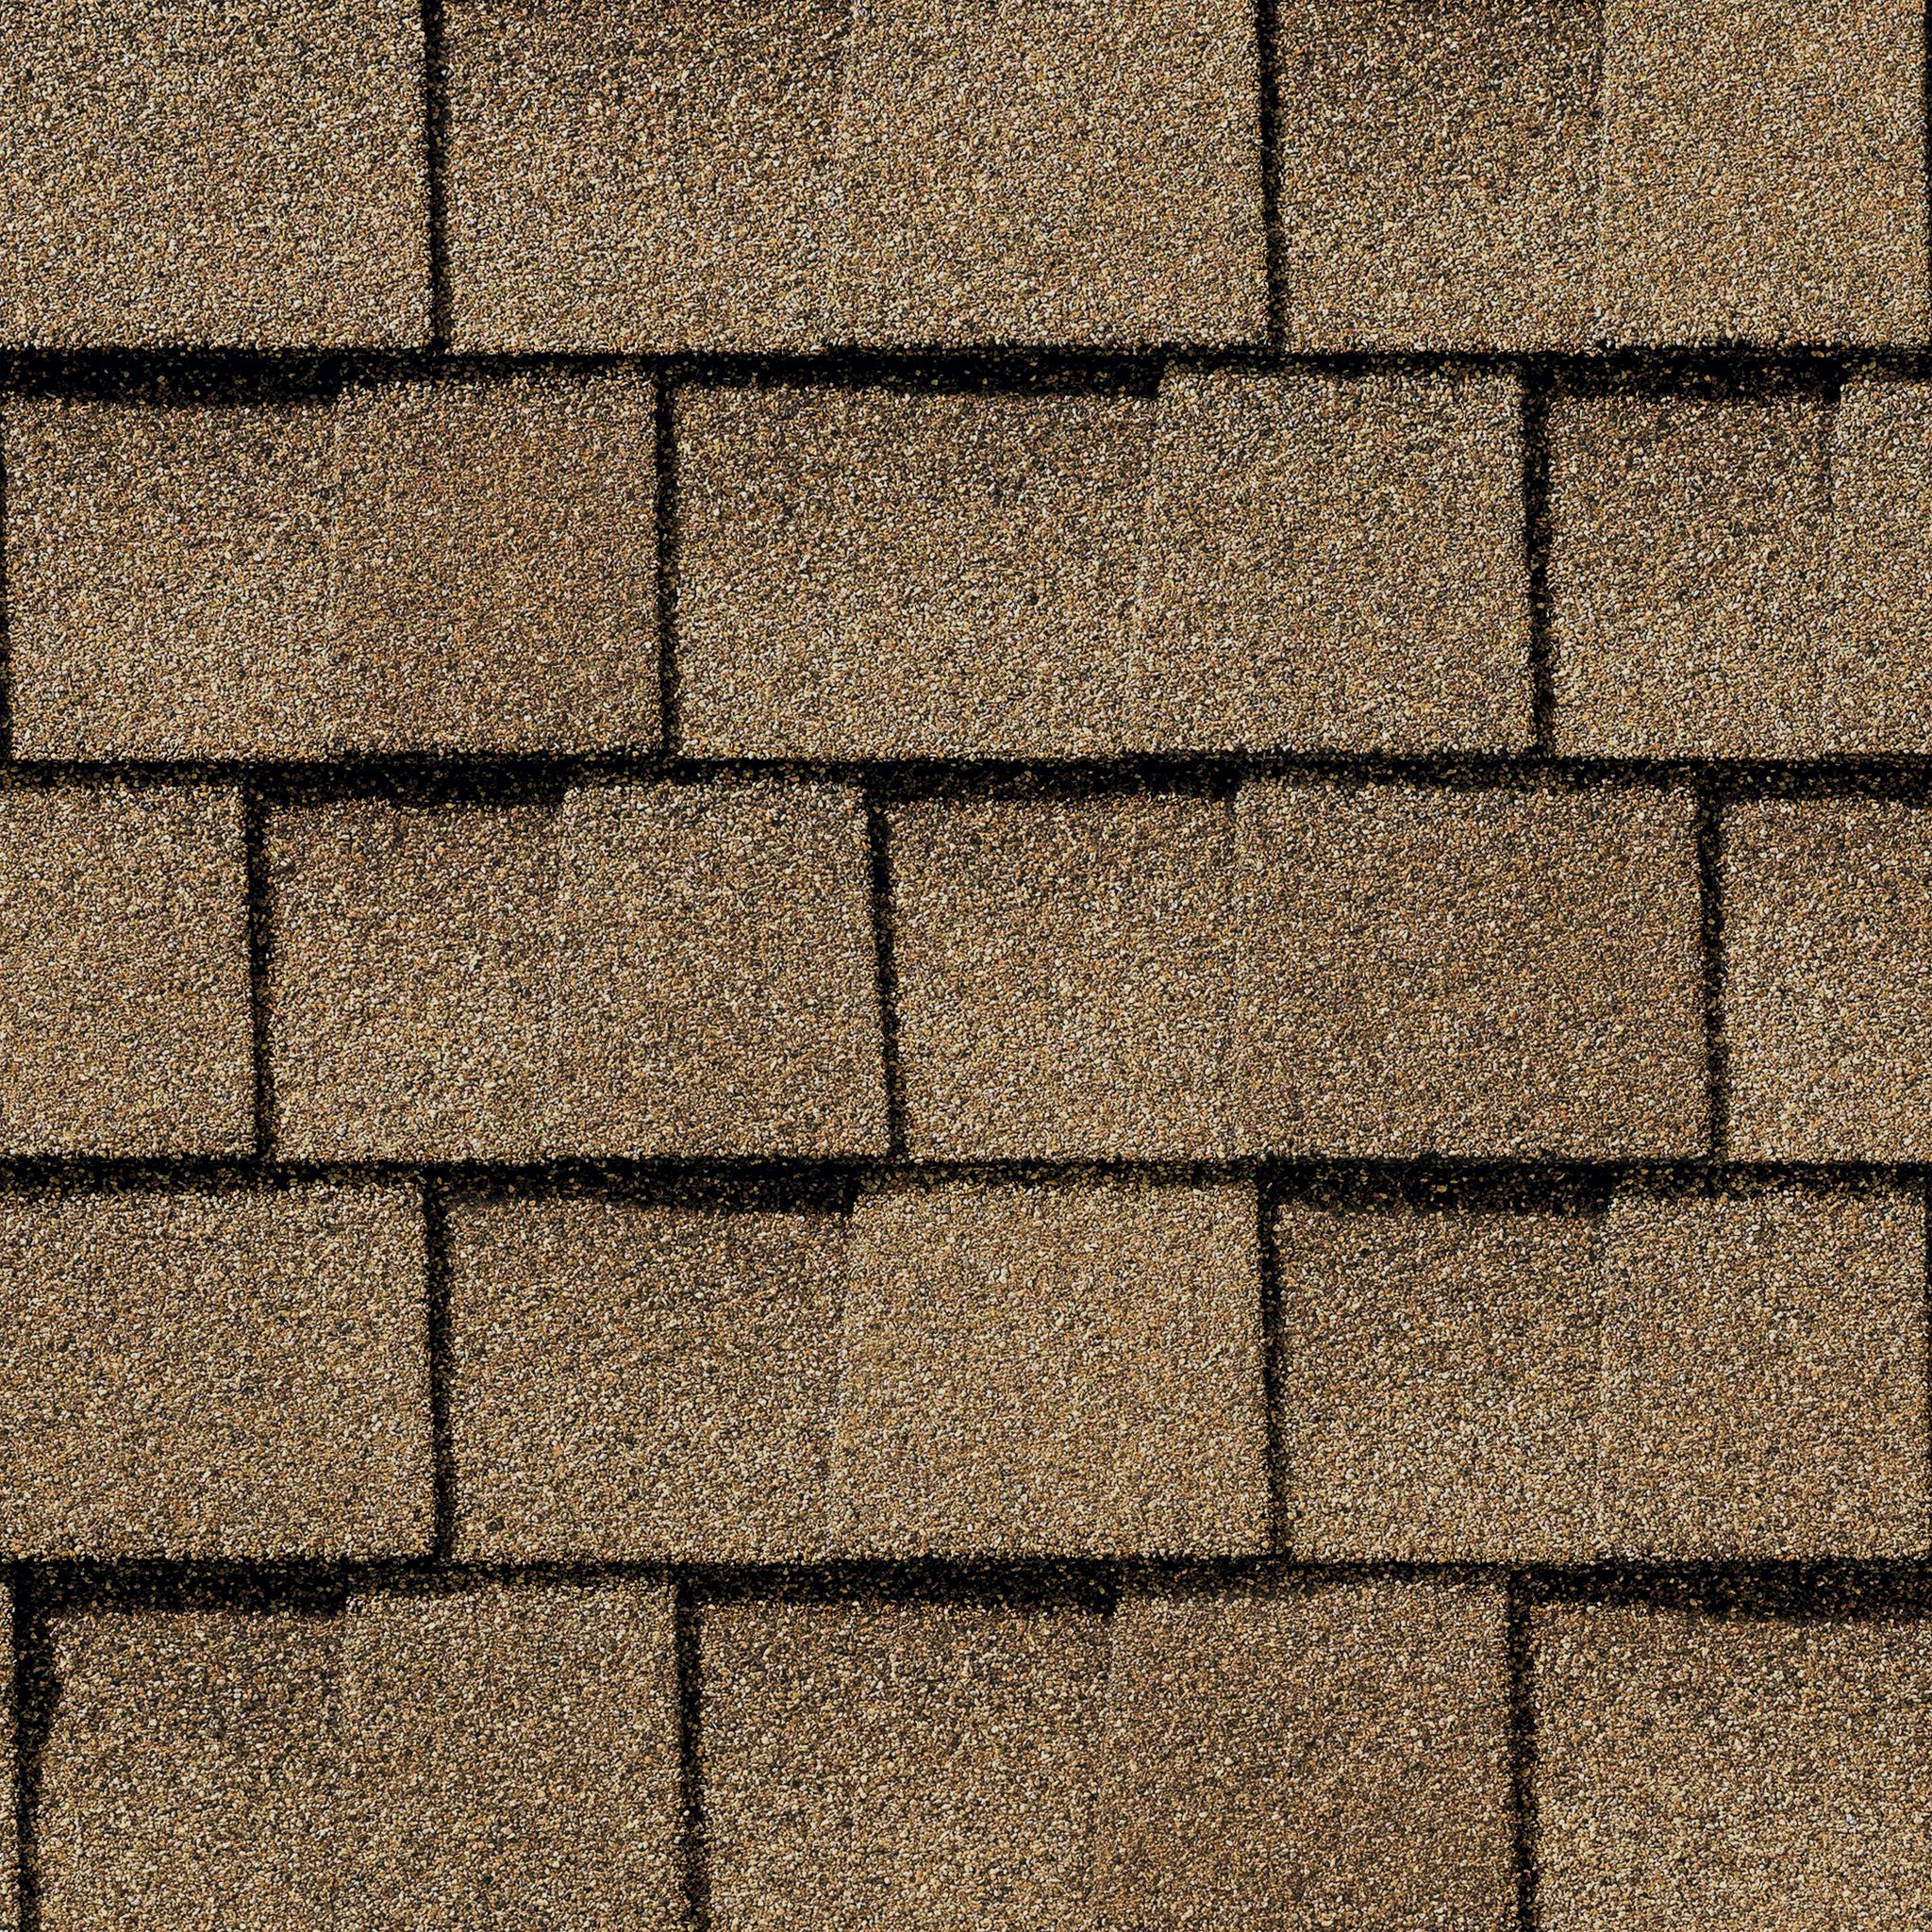 Close up photo of GAF's Timberline Natural Shadow Shakewood shingle swatch